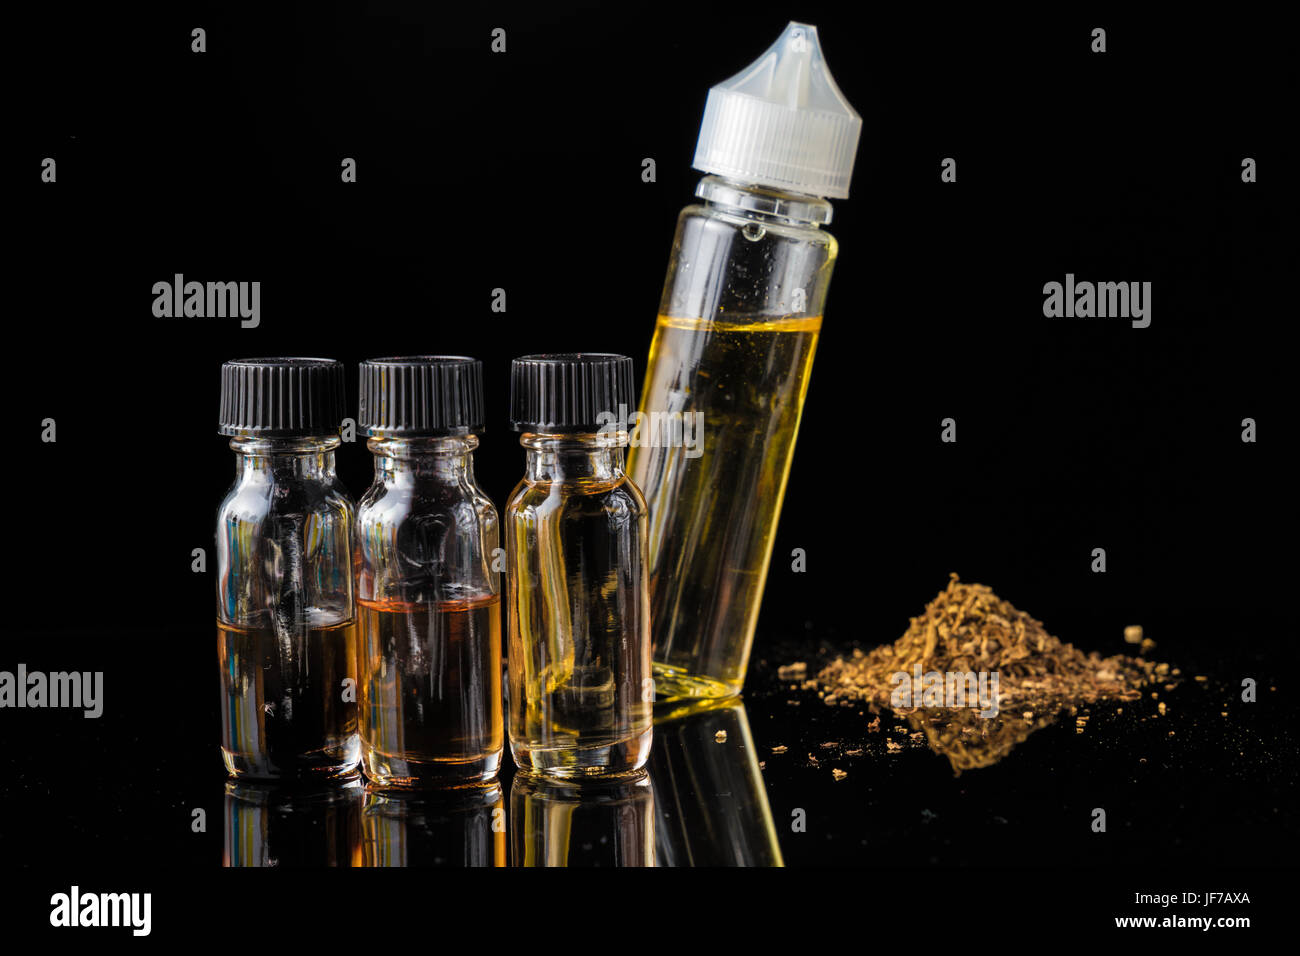 E-liquid bottles next to grinded tobacco leaves and smoke cloud - Stock Image